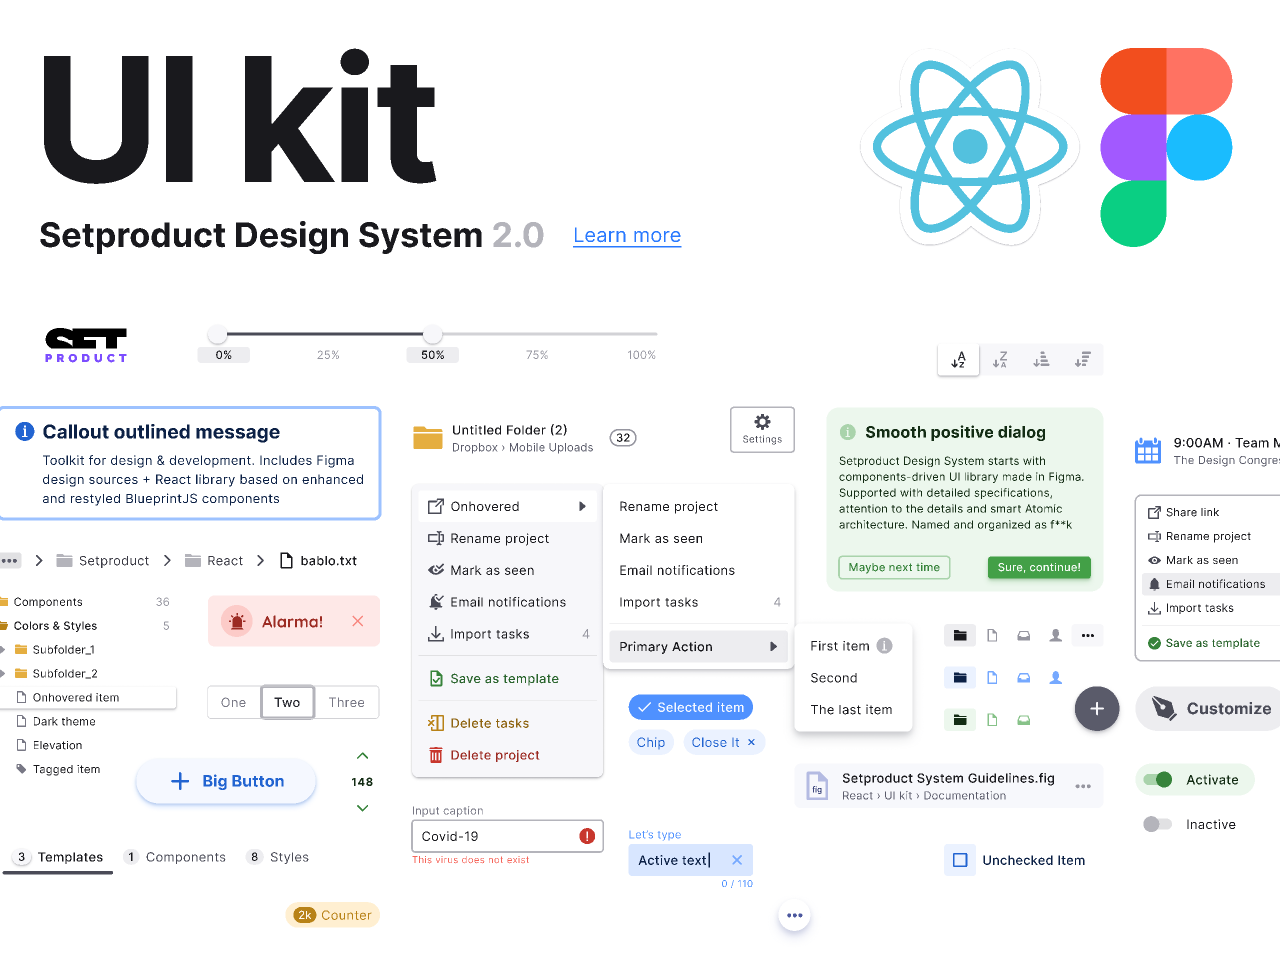 Design System 2.0 - UI kit